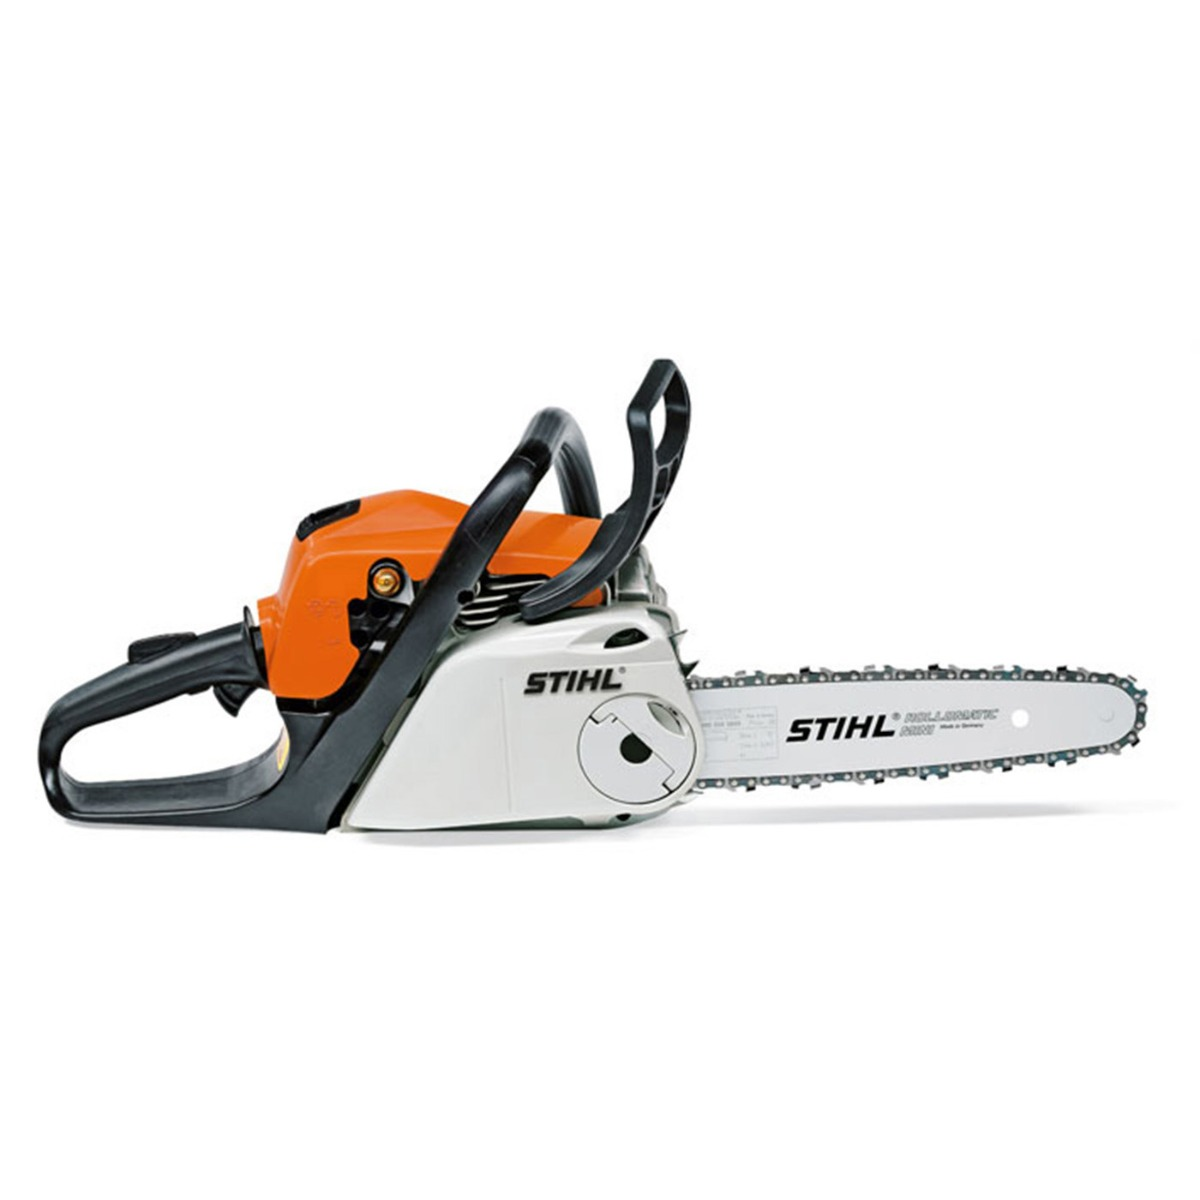 STIHL MS 181 C-BE 14